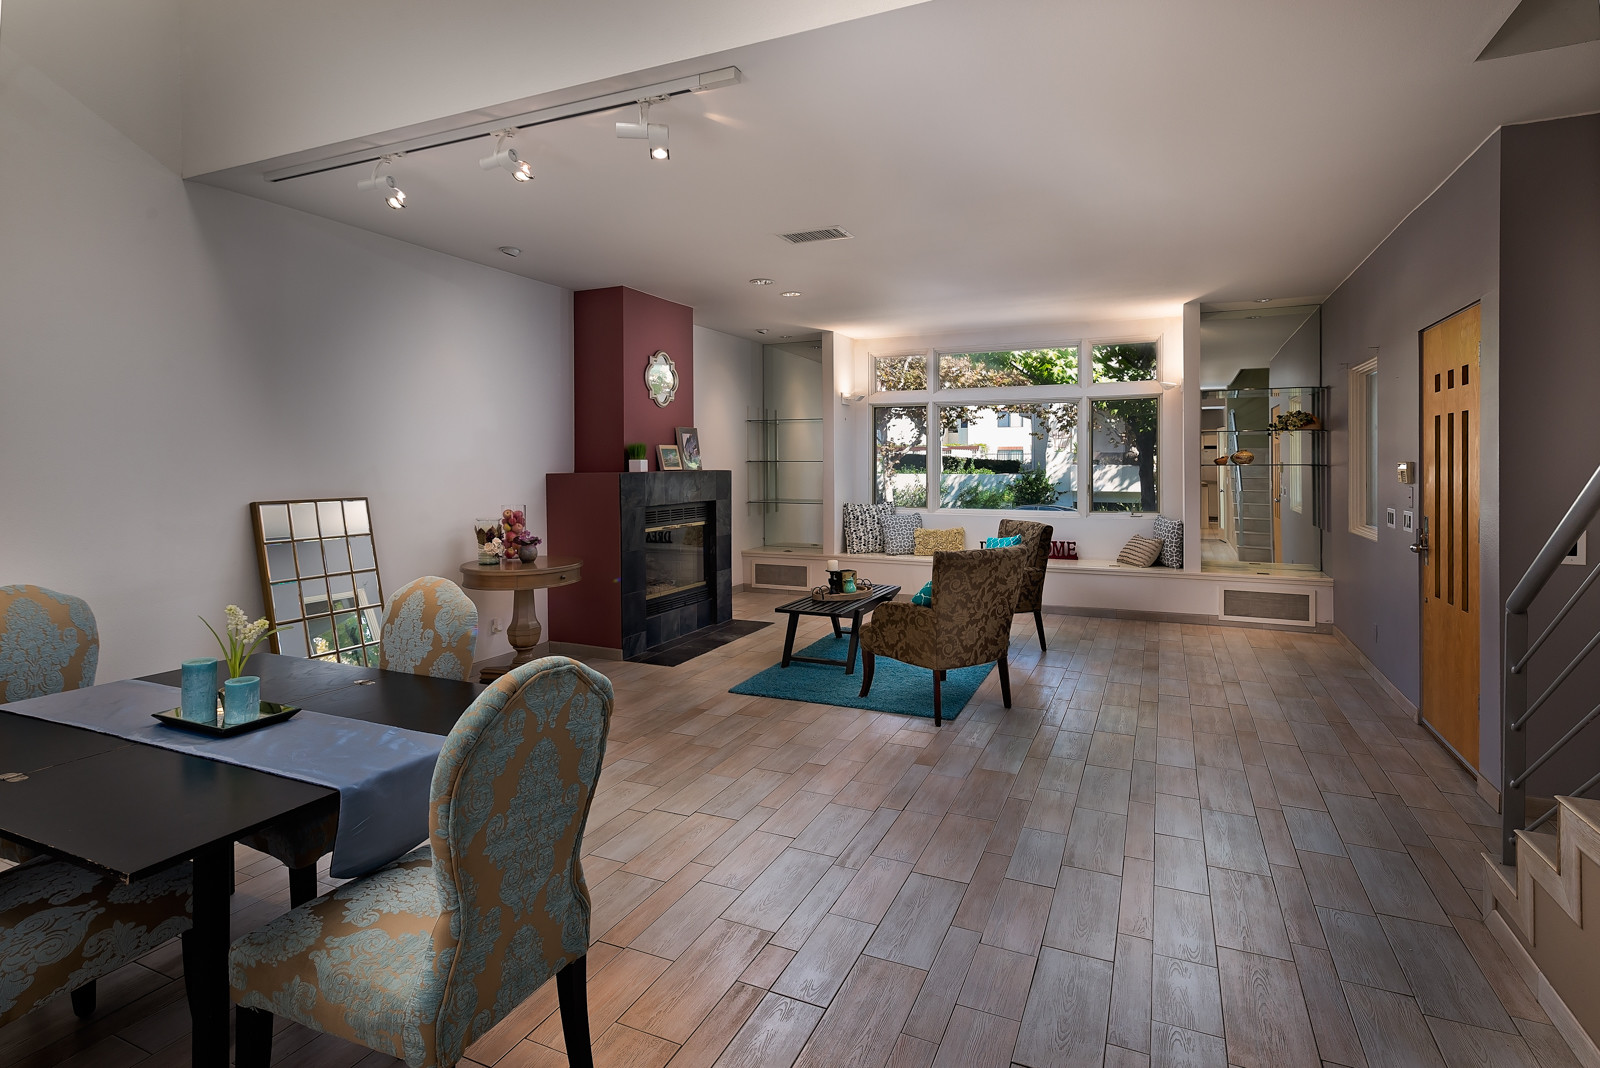 las hardwood flooring elmhurst of when is the right time to sell san diego in 0dr3340 edit edit edit